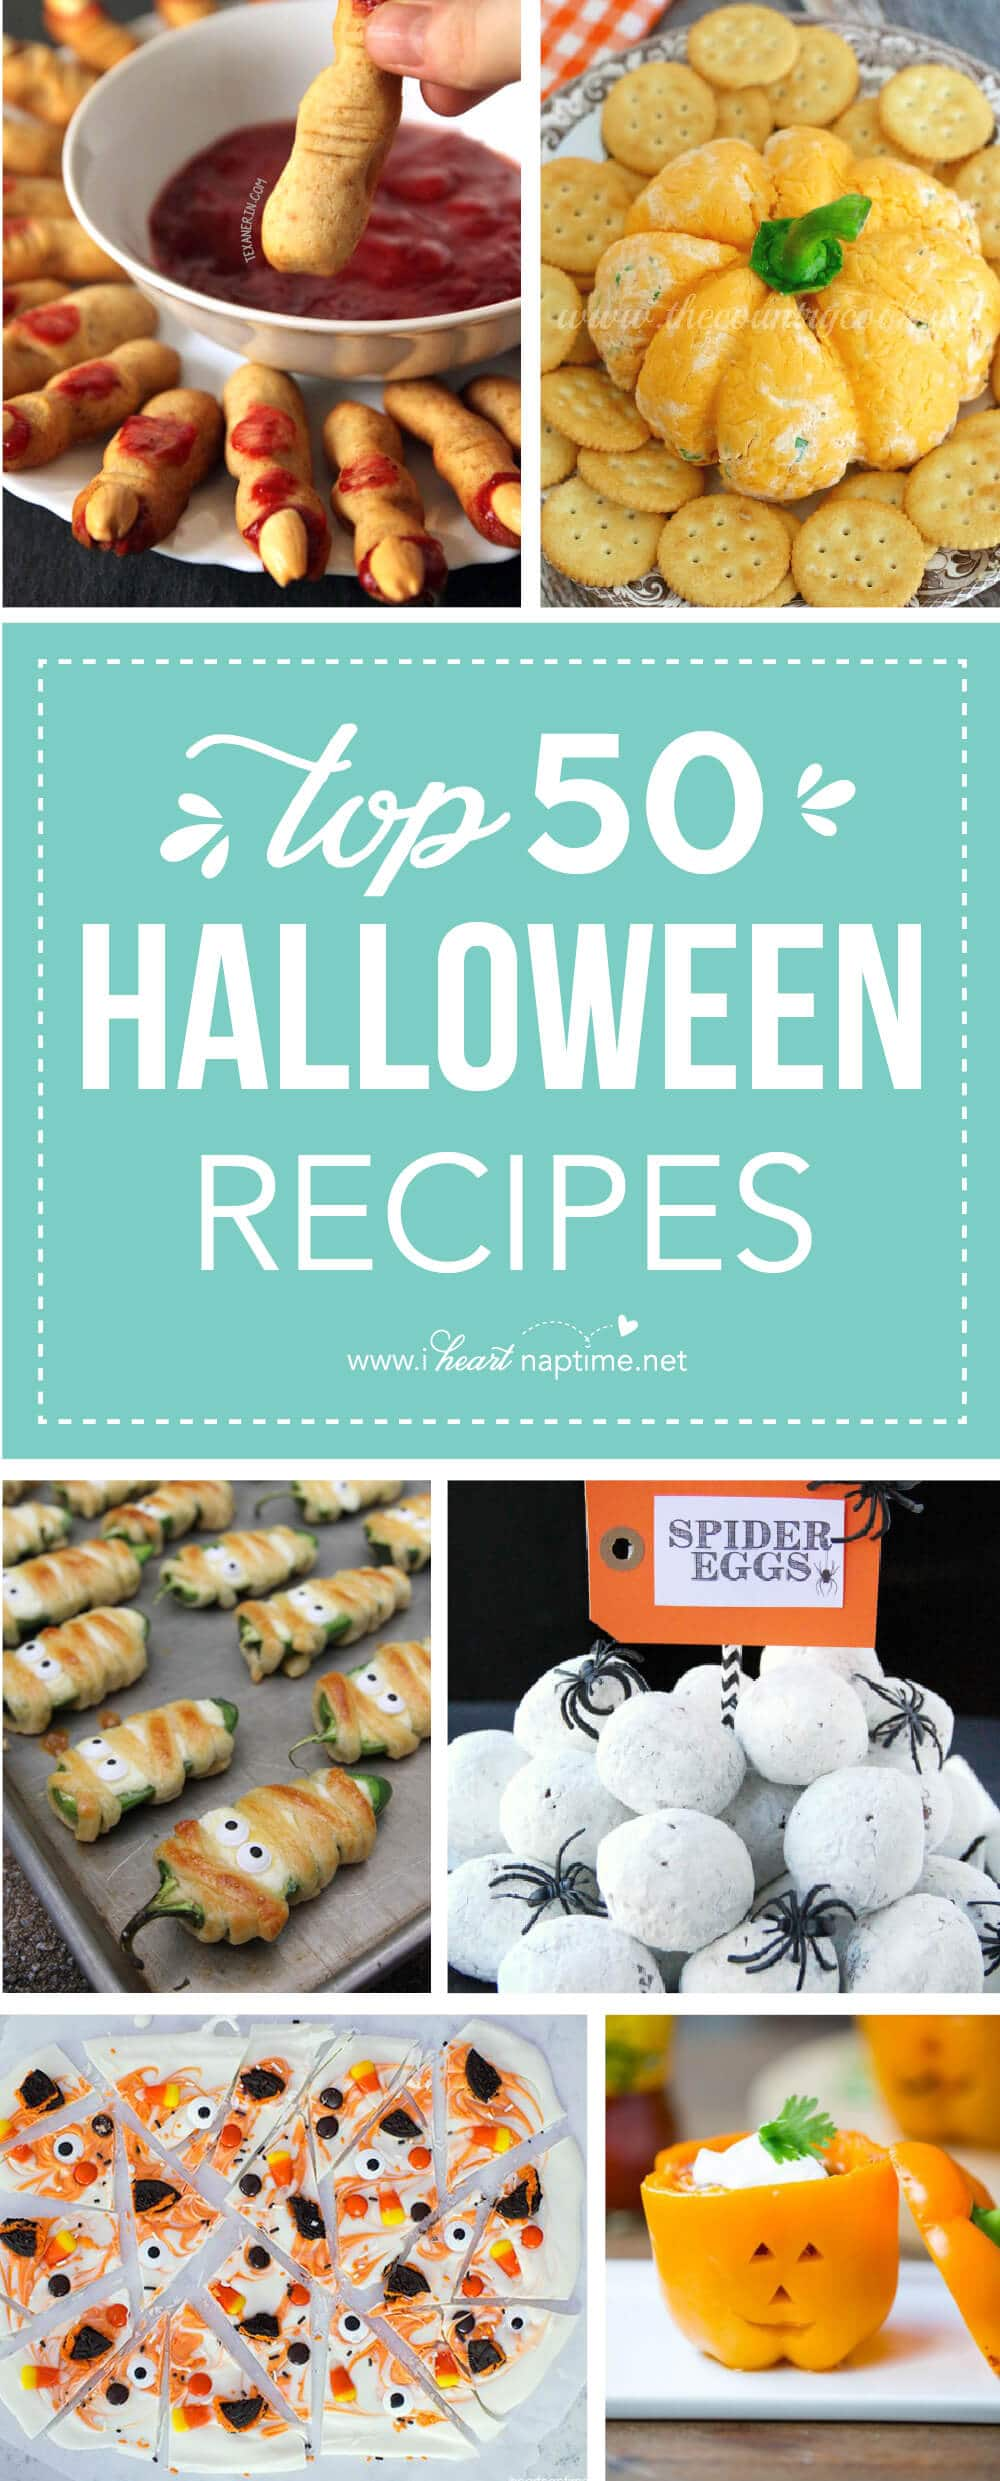 Top 50 Halloween Recipes ...I've rounded up some absolute fantastic Halloween dips, side dishes and entree's that are sure to WOW at your next Halloween Party!